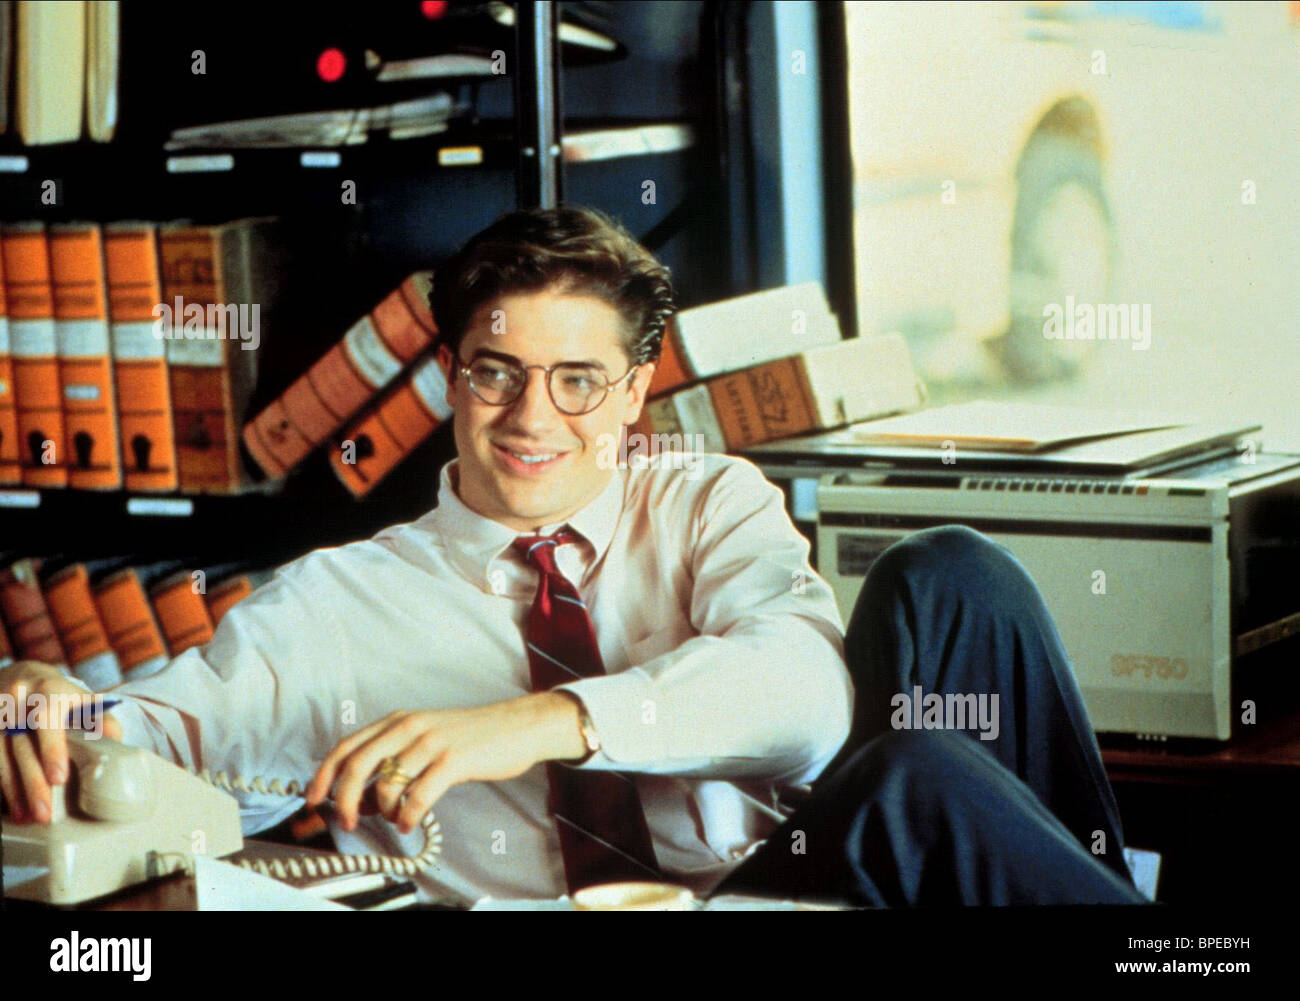 BRENDAN FRASER YOUNGER AND YOUNGER (1993) - Stock Image